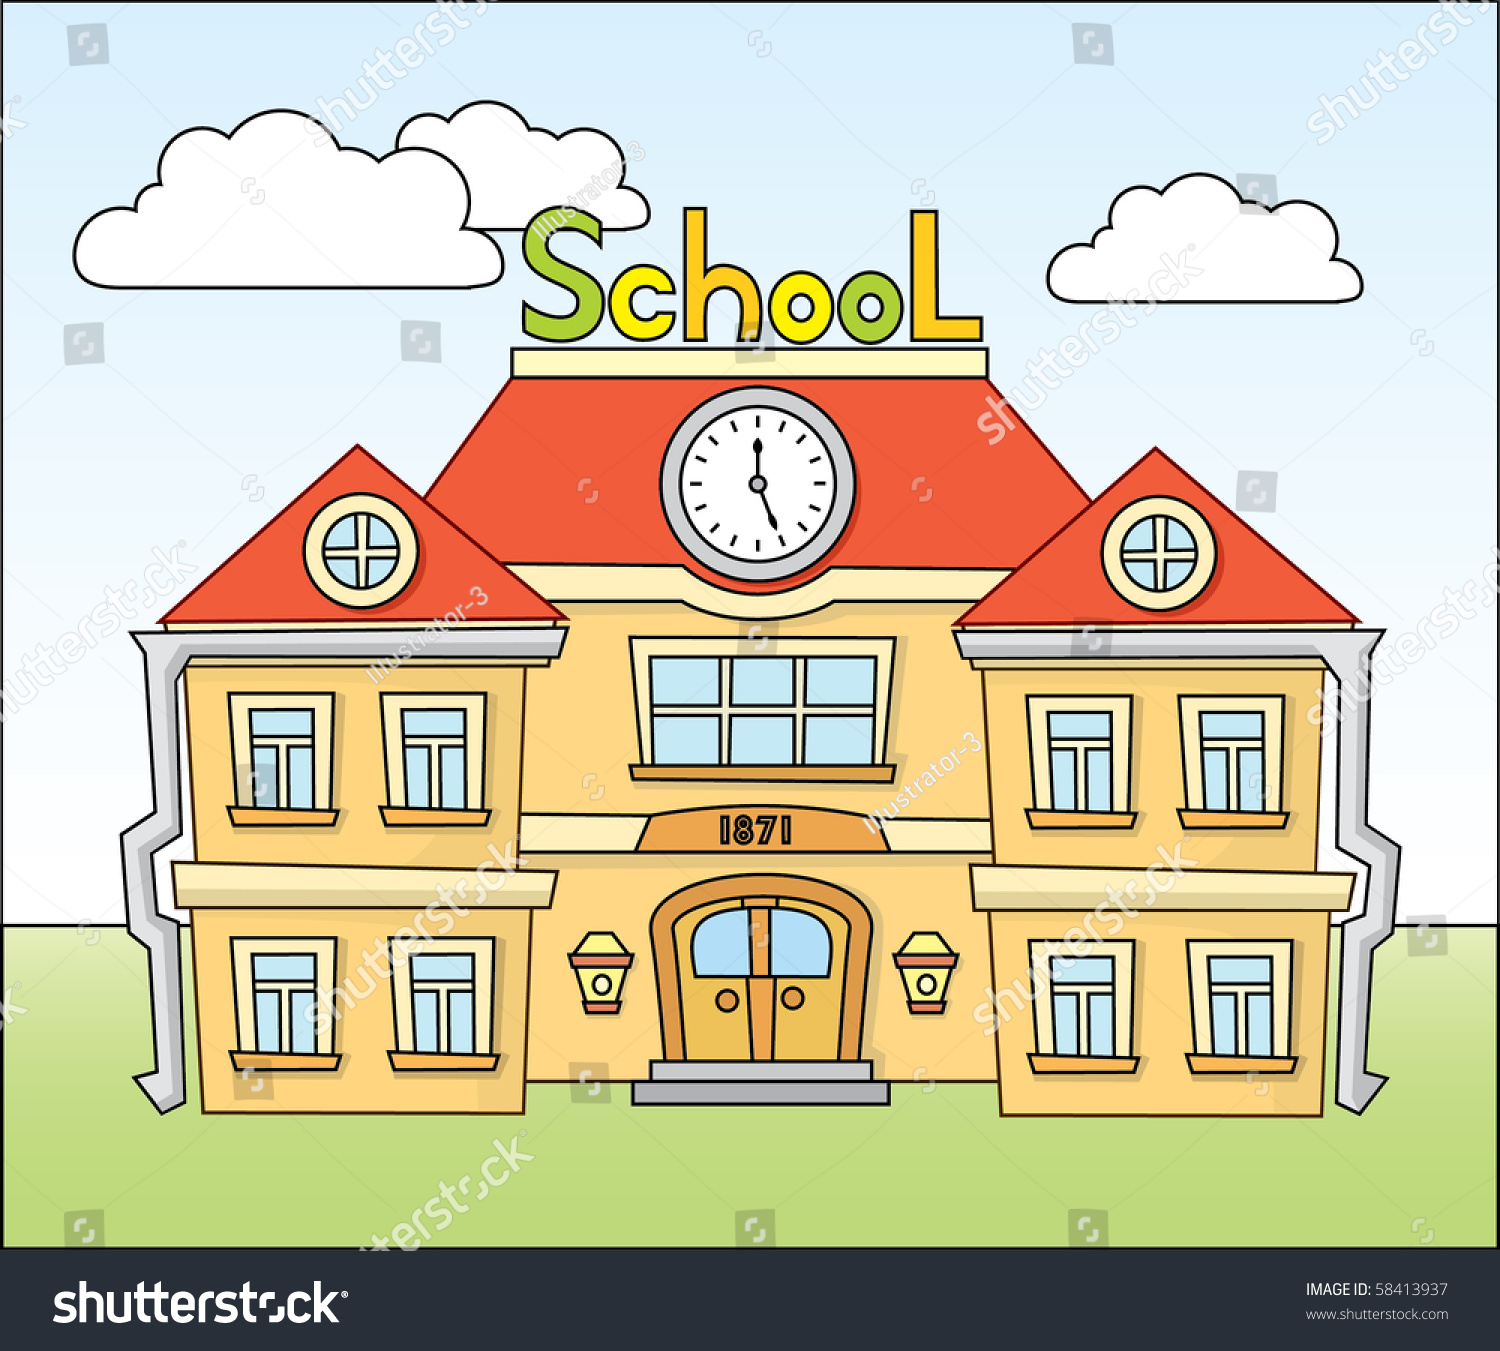 cartoon school stock vector 58413937 shutterstock